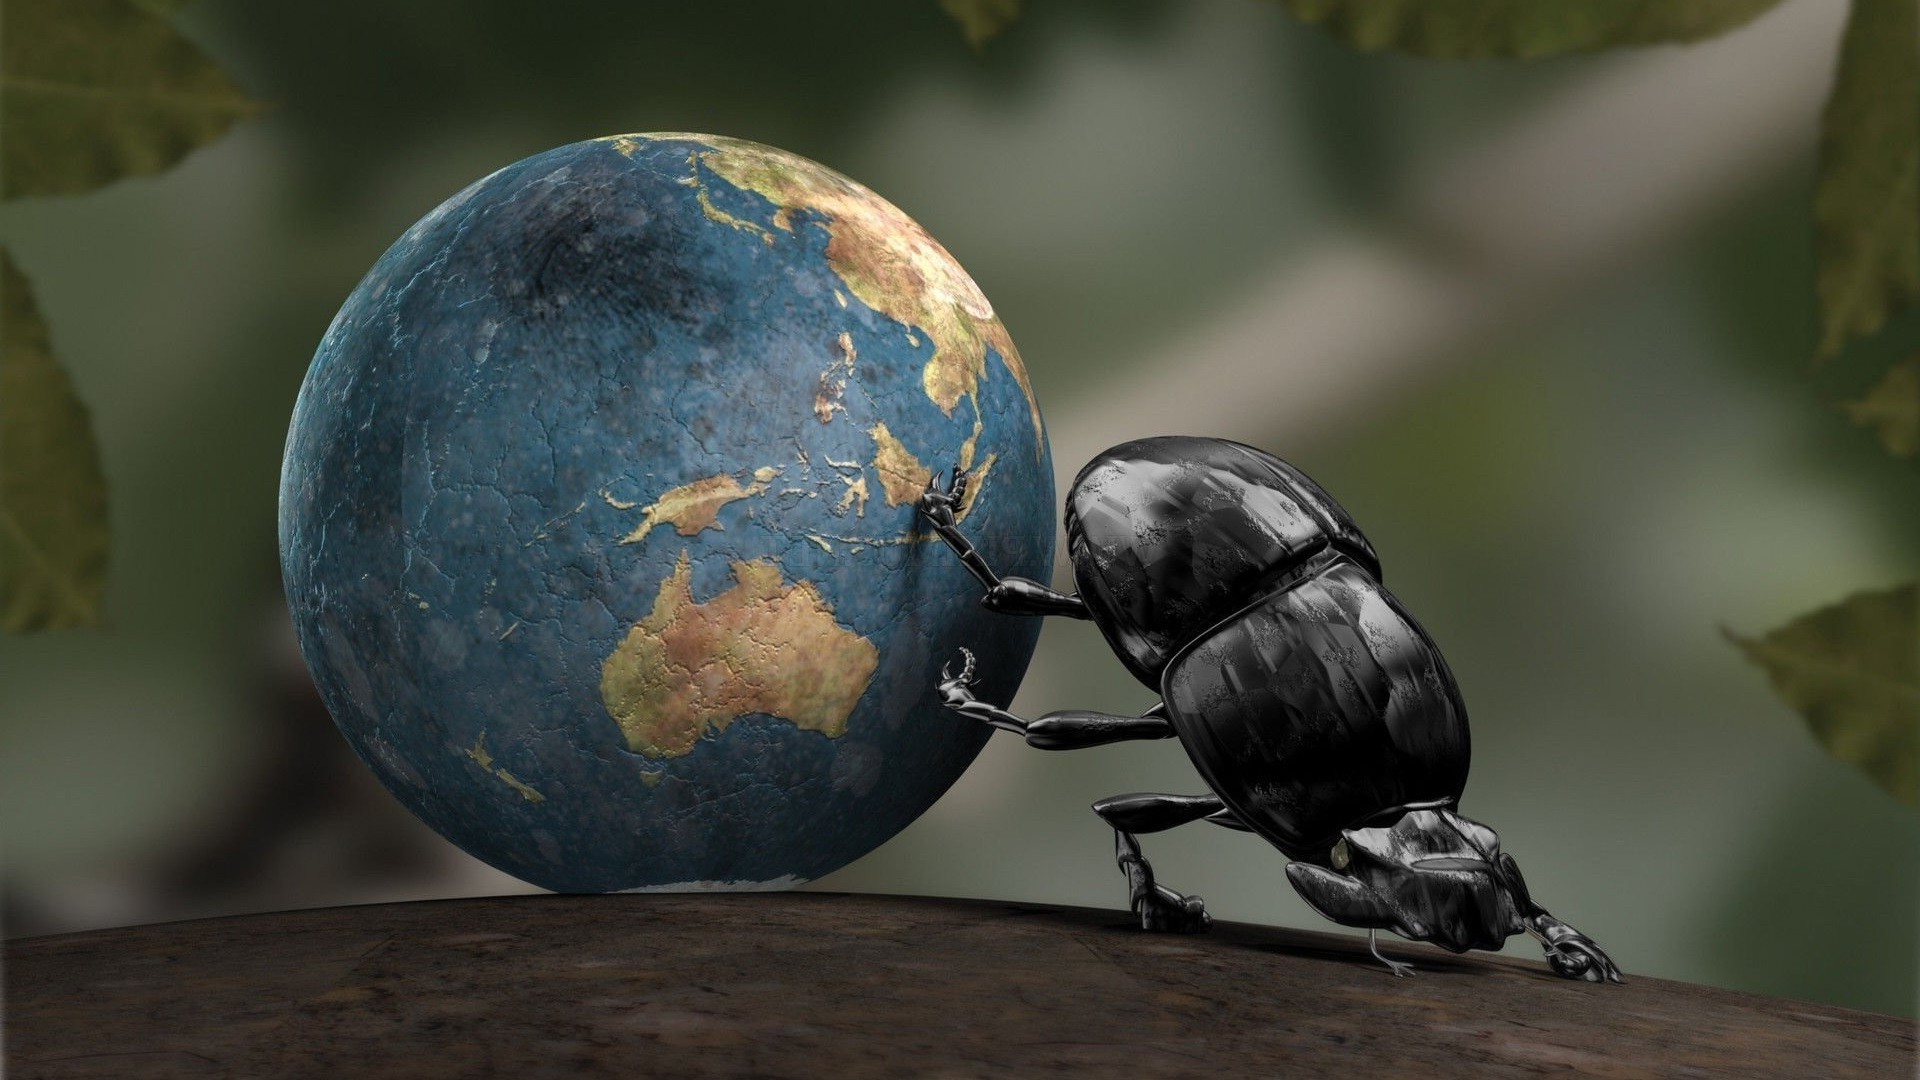 Earth, Insect, CGI, Dung Beetle, Crabs Wallpapers HD